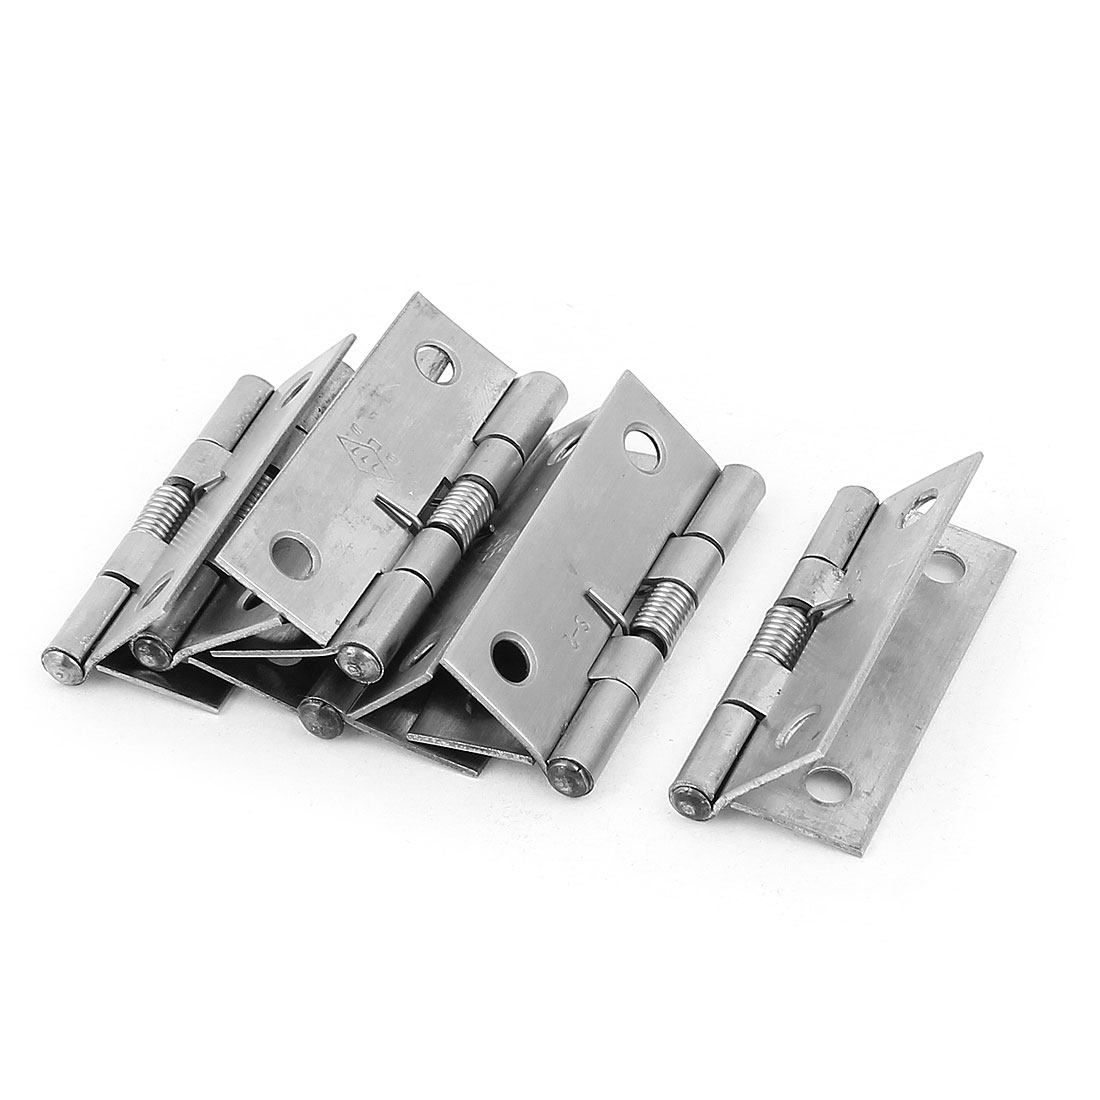 52mm Long Spring Loaded Cupboard Cabinet Closet Door Butt Hinge Silver Tone 6Pcs